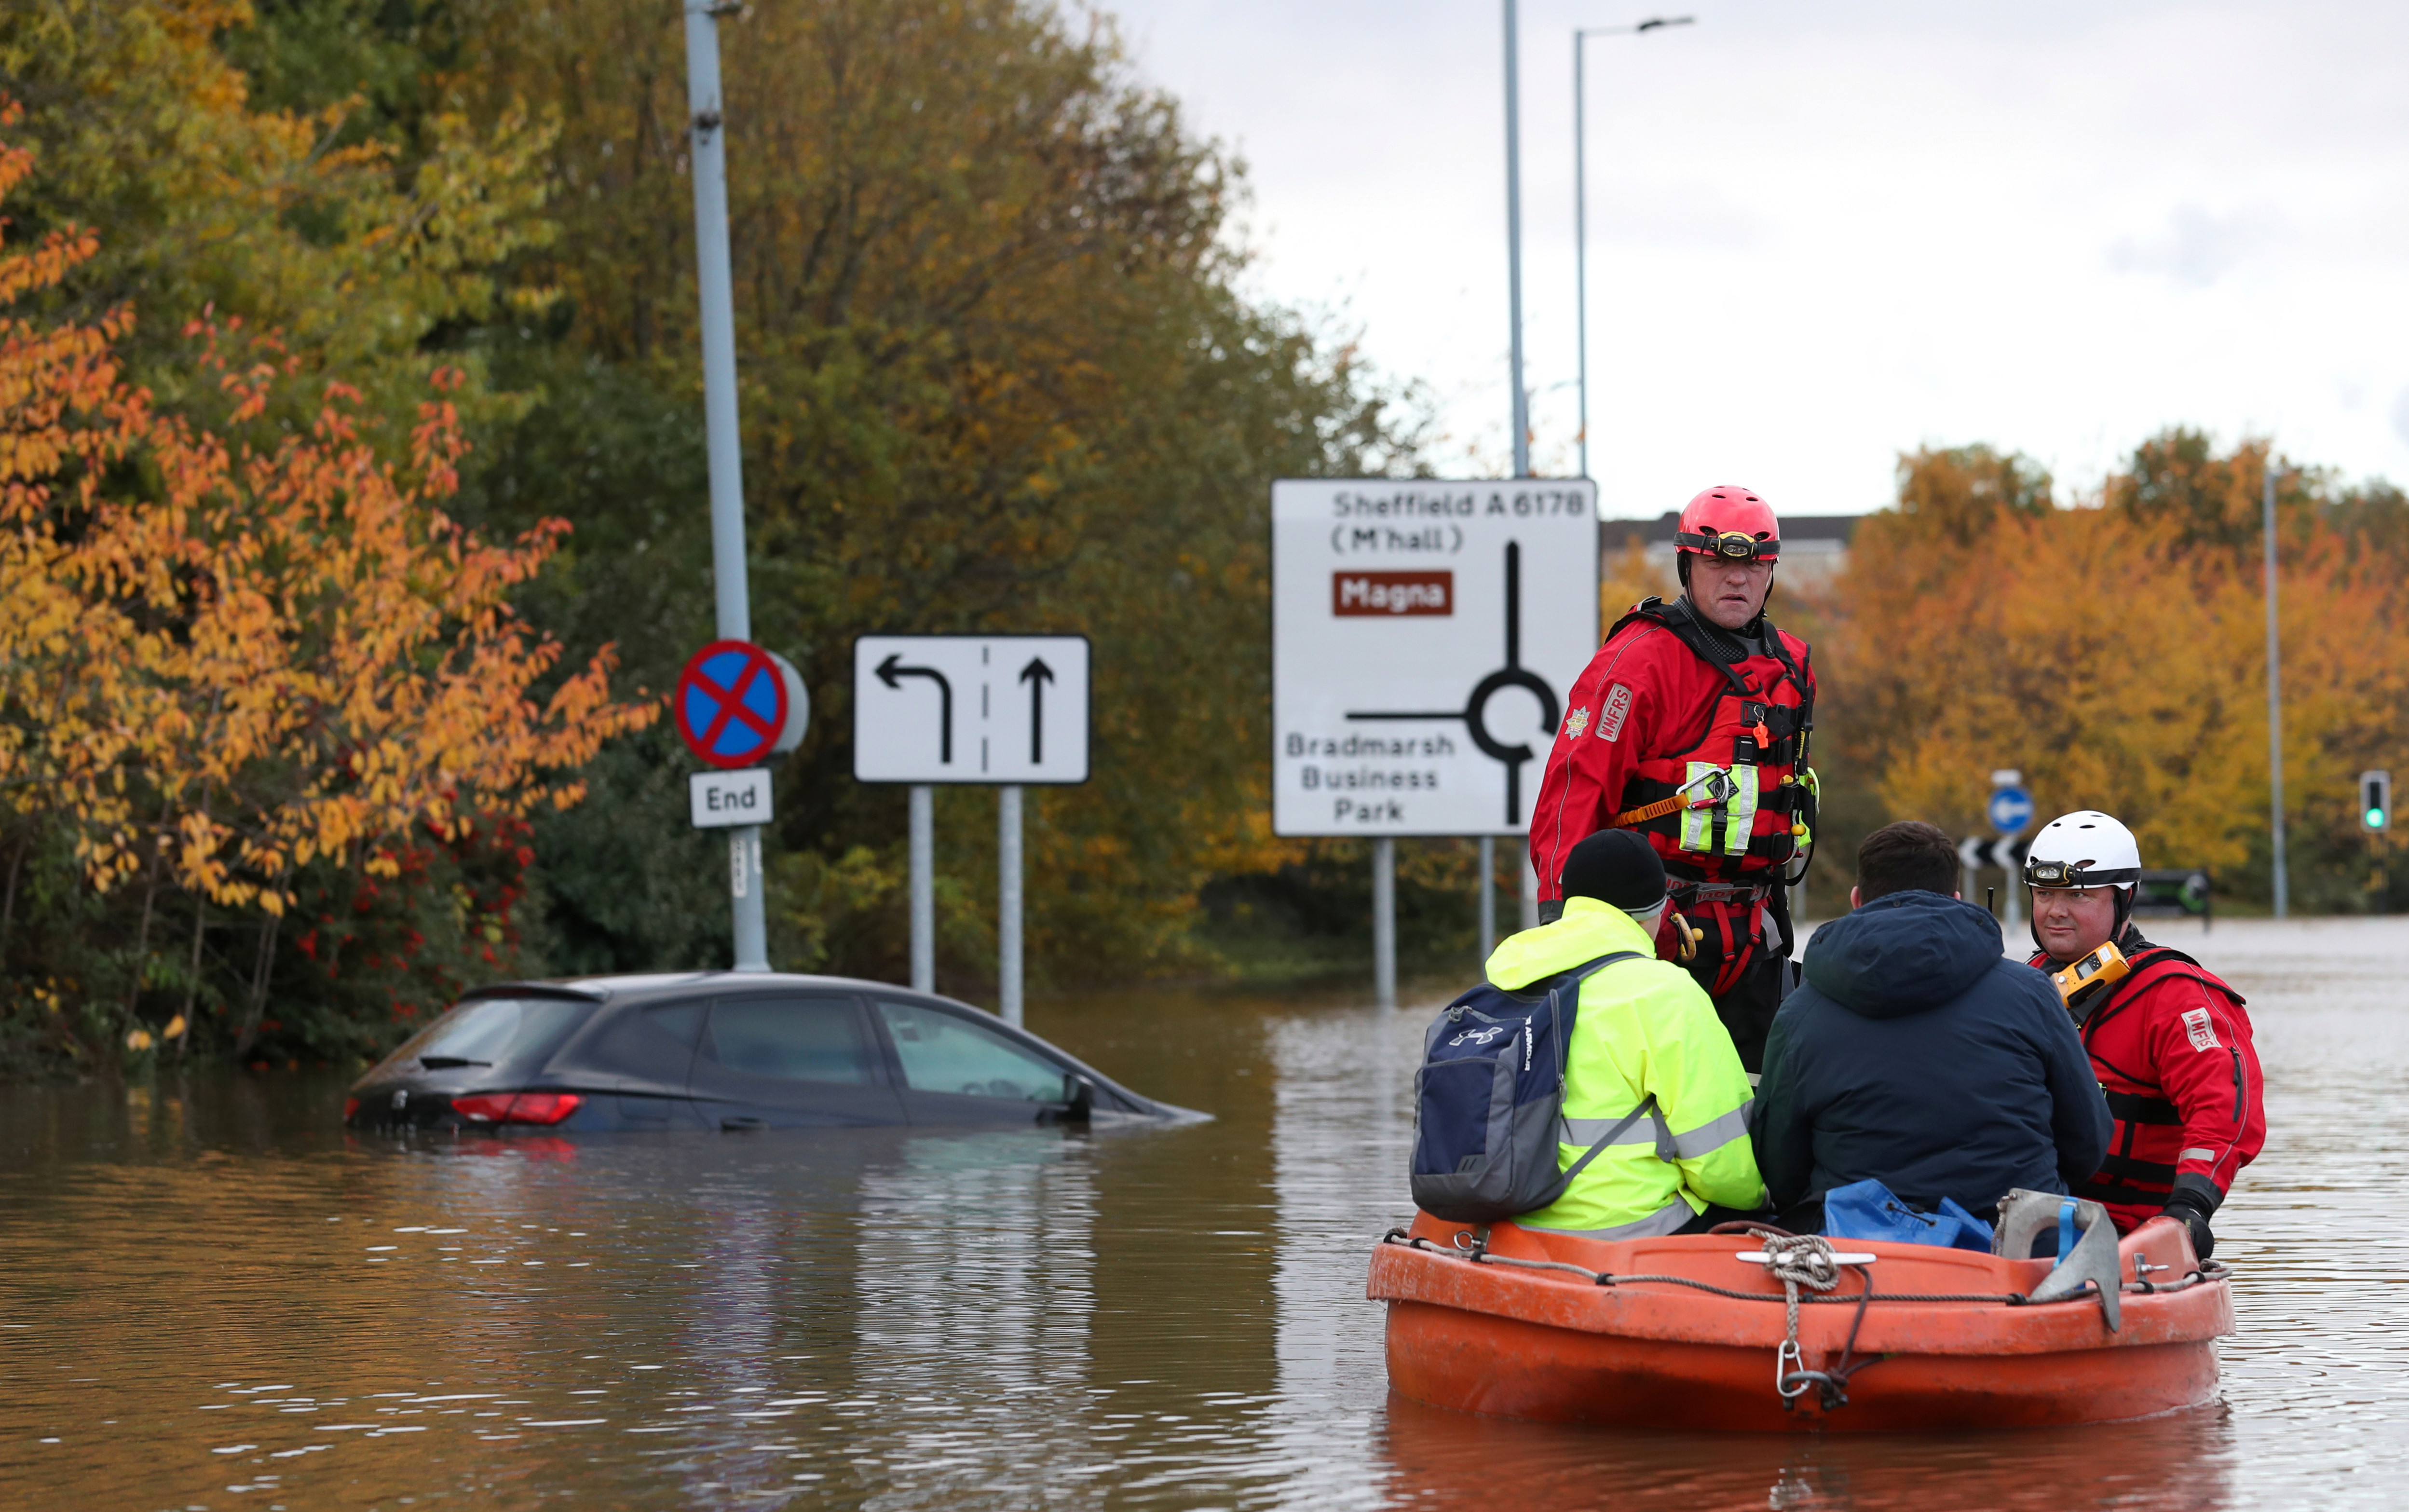 Rescuers have been working overnight and into today to evacuate locals from flooded areas